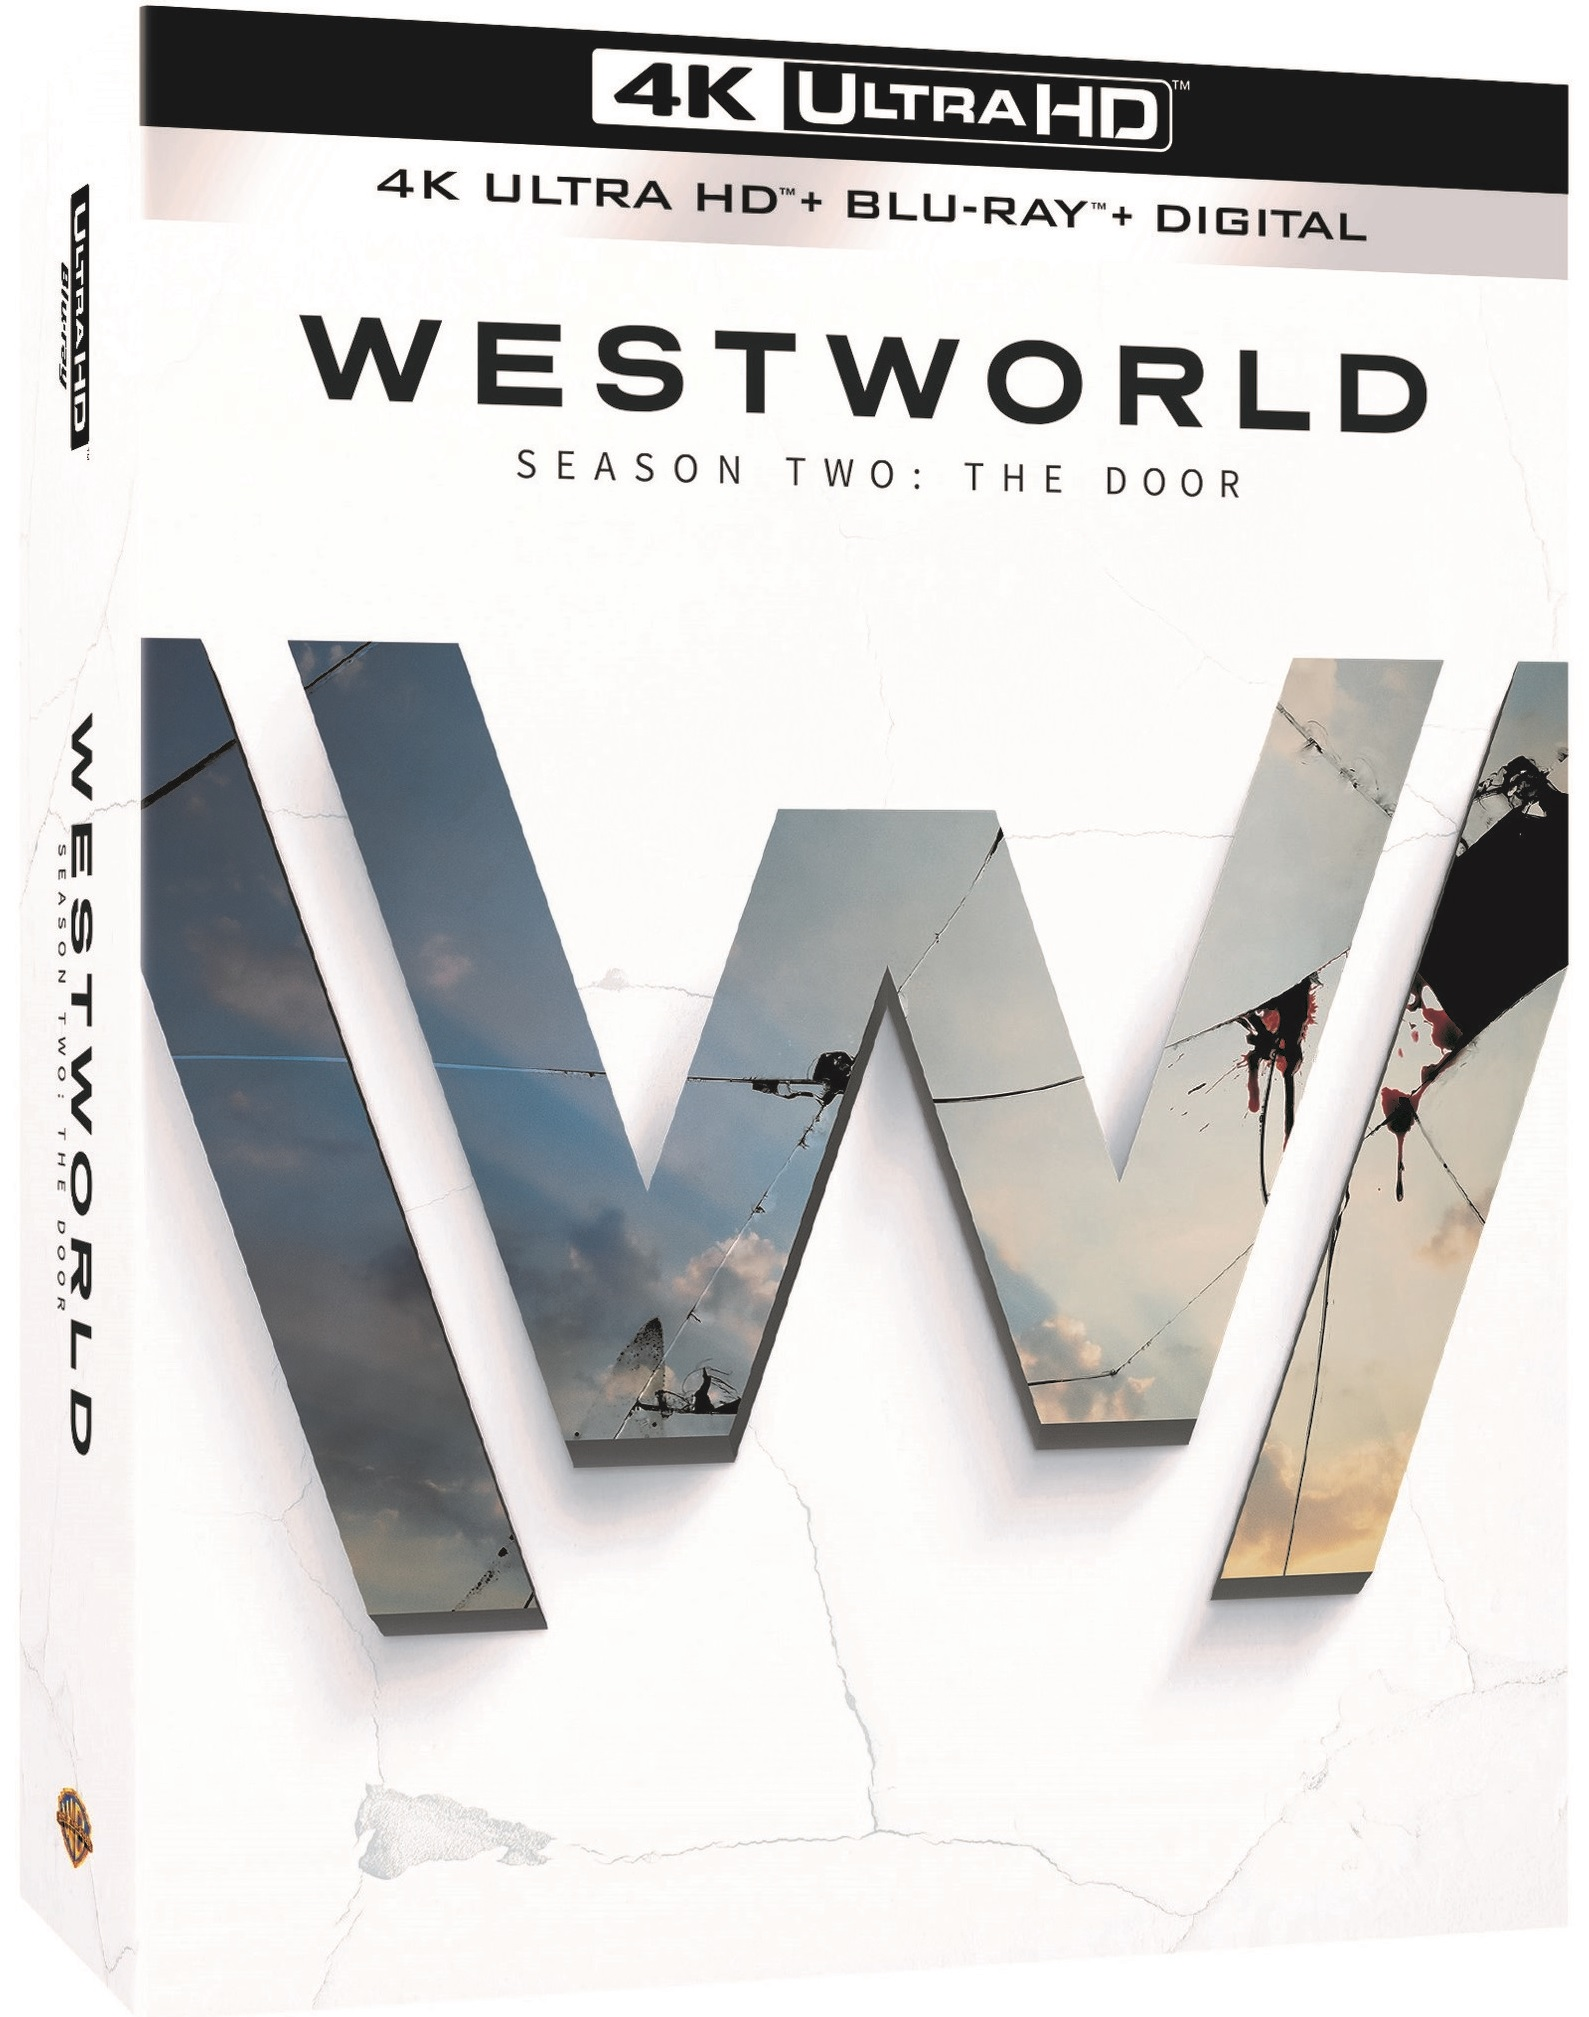 WESTWORLD SEASON TWO: THE DOOR Blu-ray